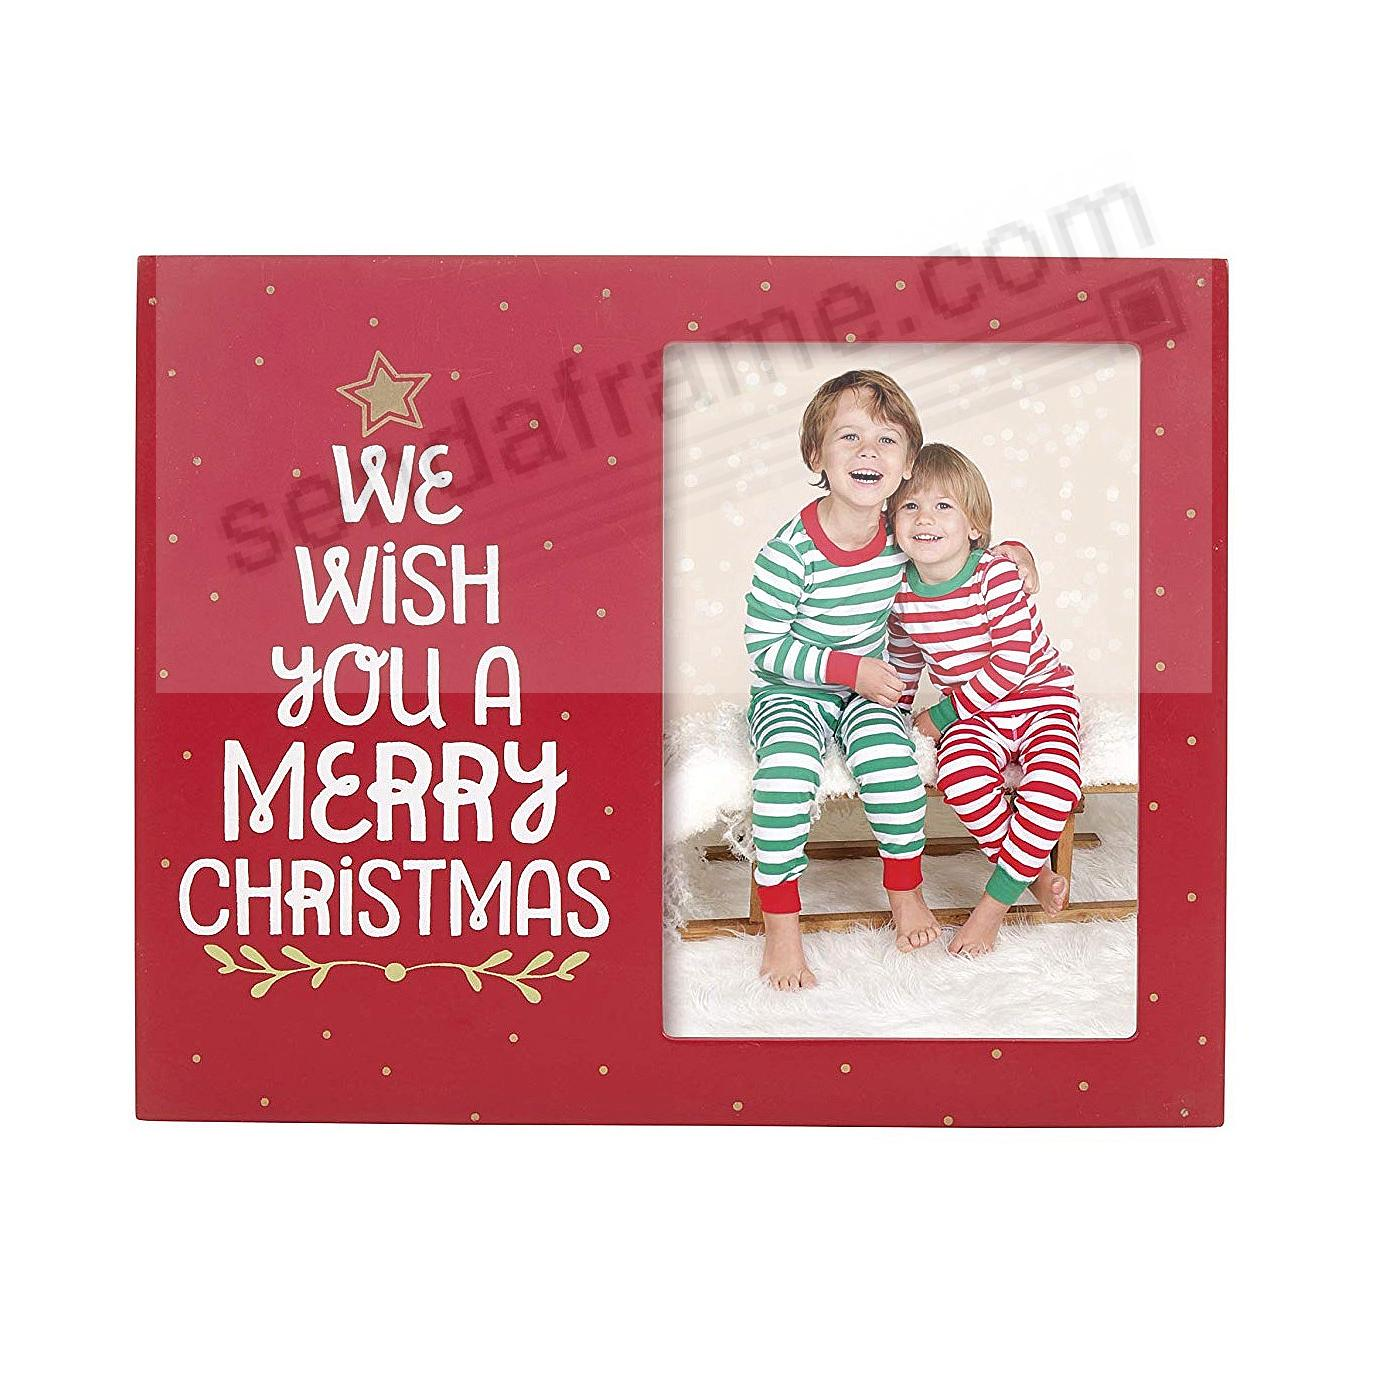 WE WISH YOU A MERRY CHRISTMAS... Christmas 3½x5 frame by Pearhead®